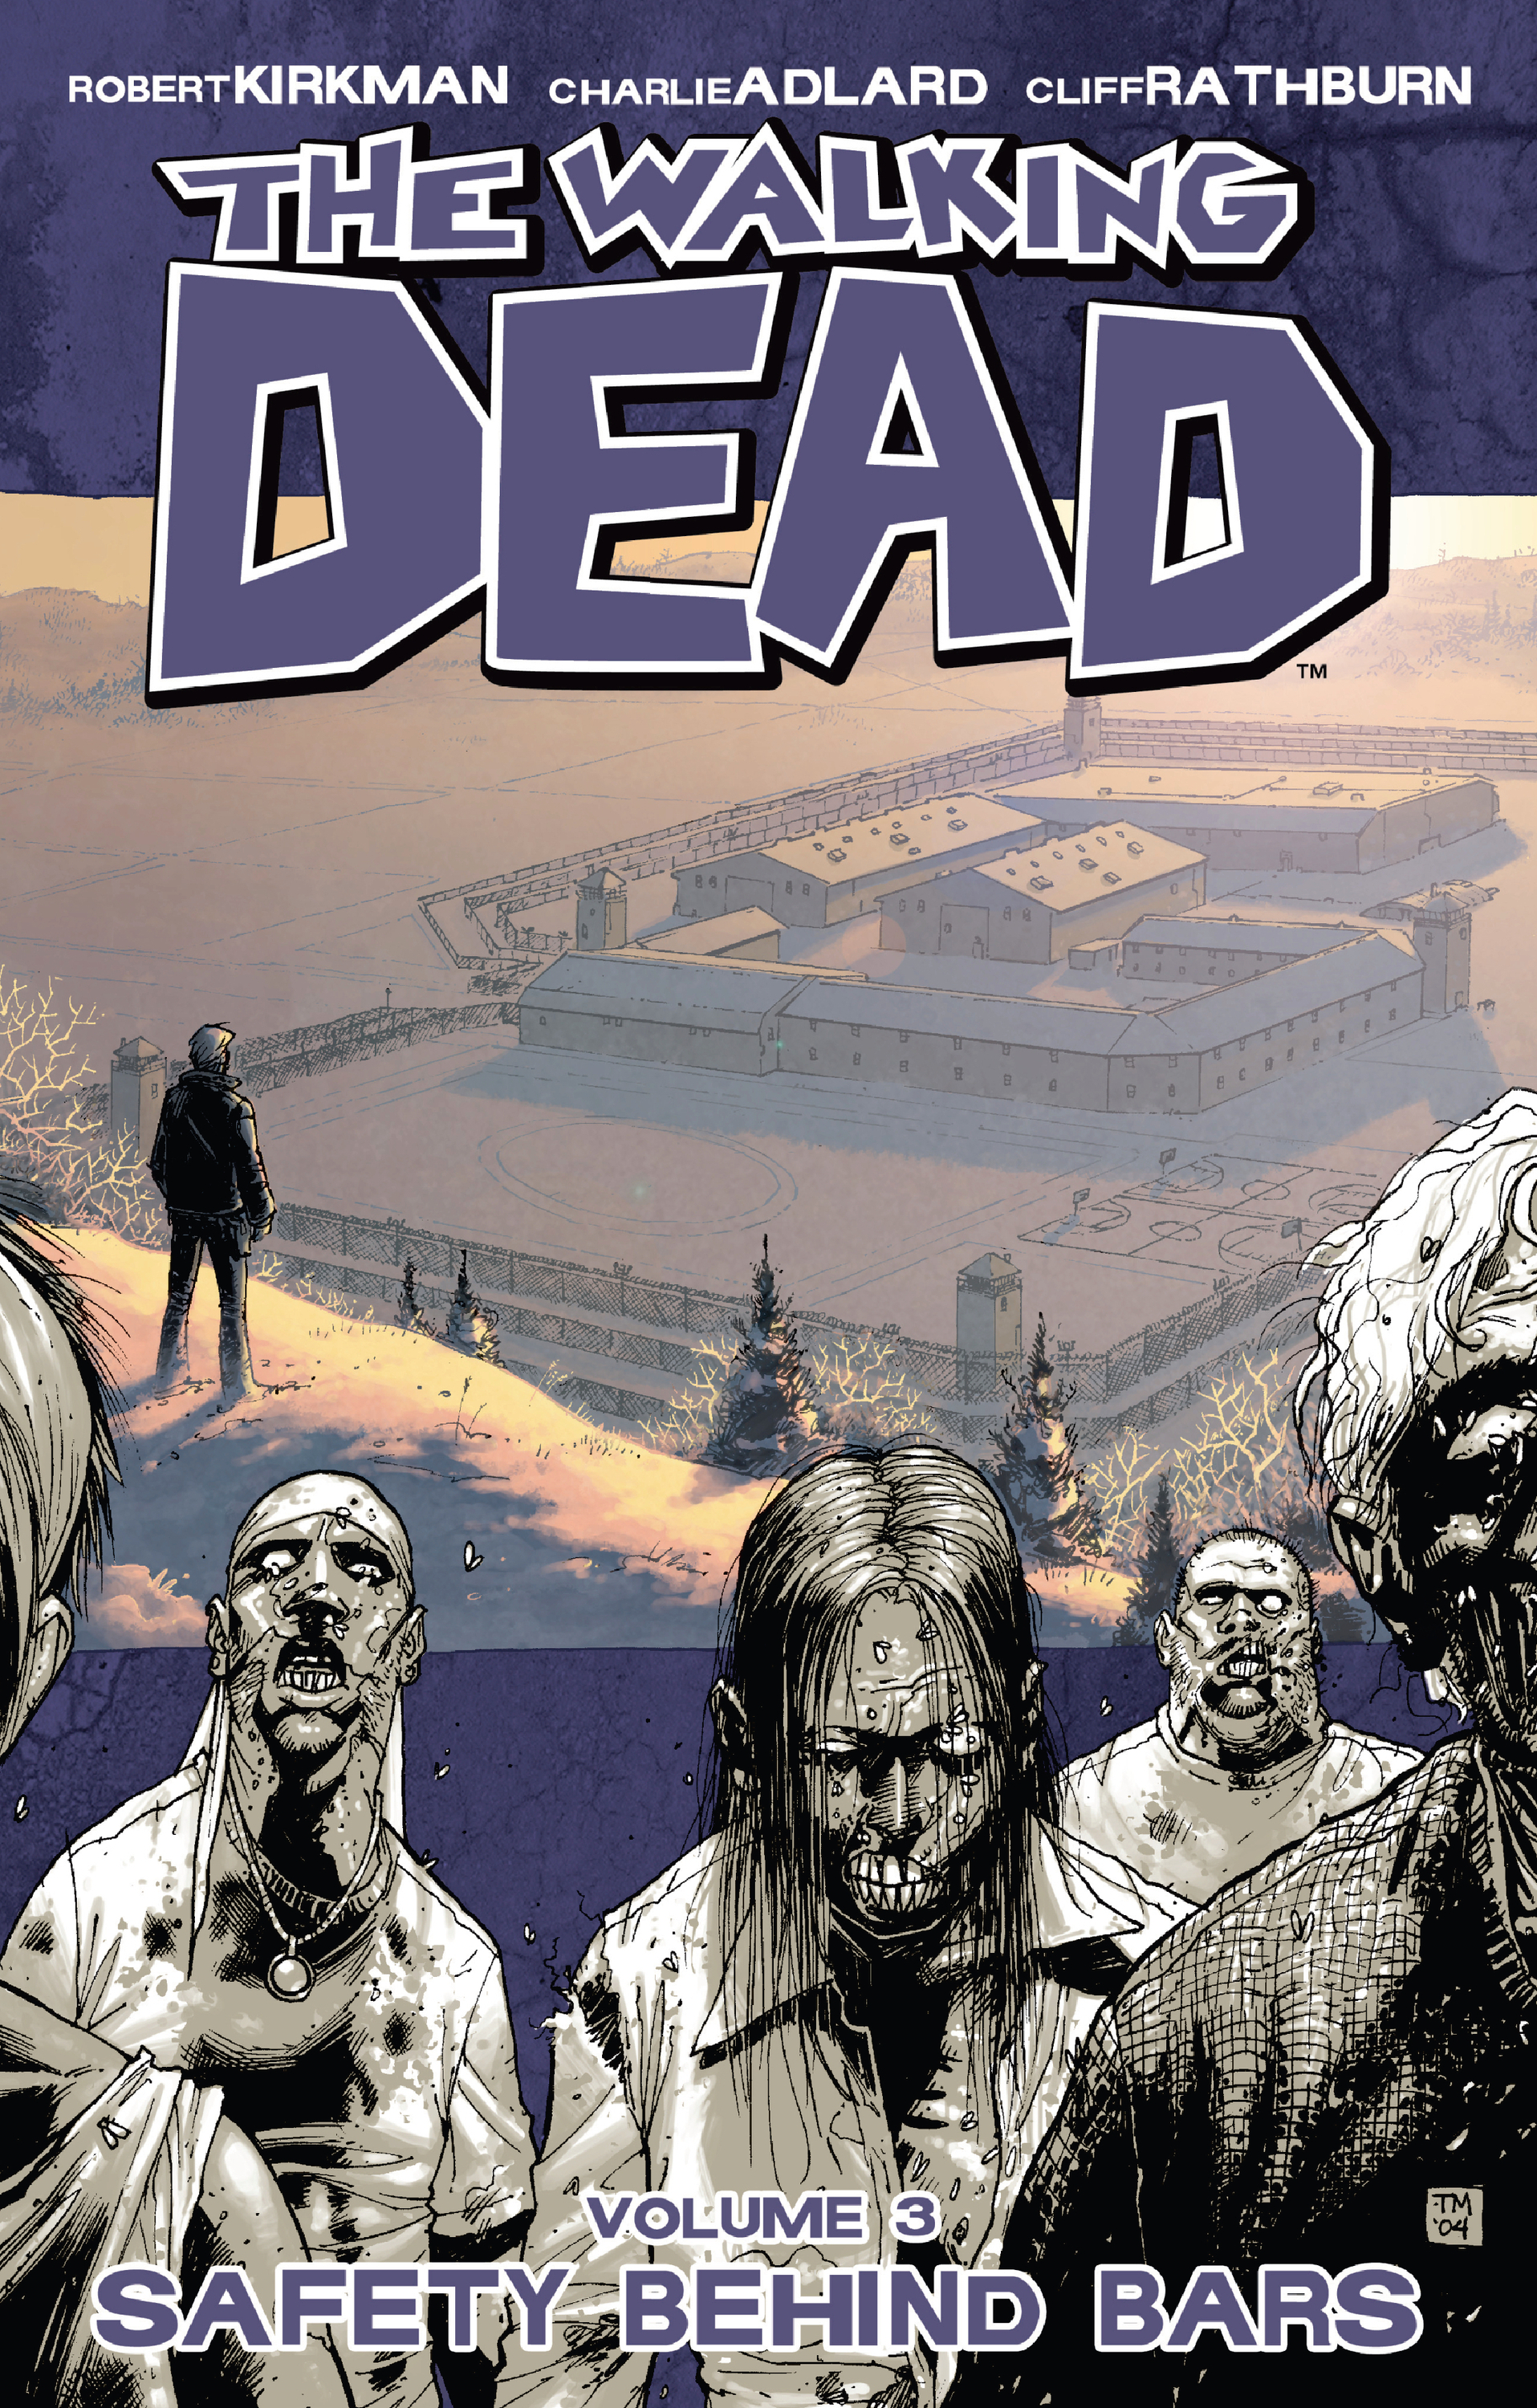 The Walking Dead, Vol. 3: Safety Behind Bars By: Robert Kirkman,Charles Adlard